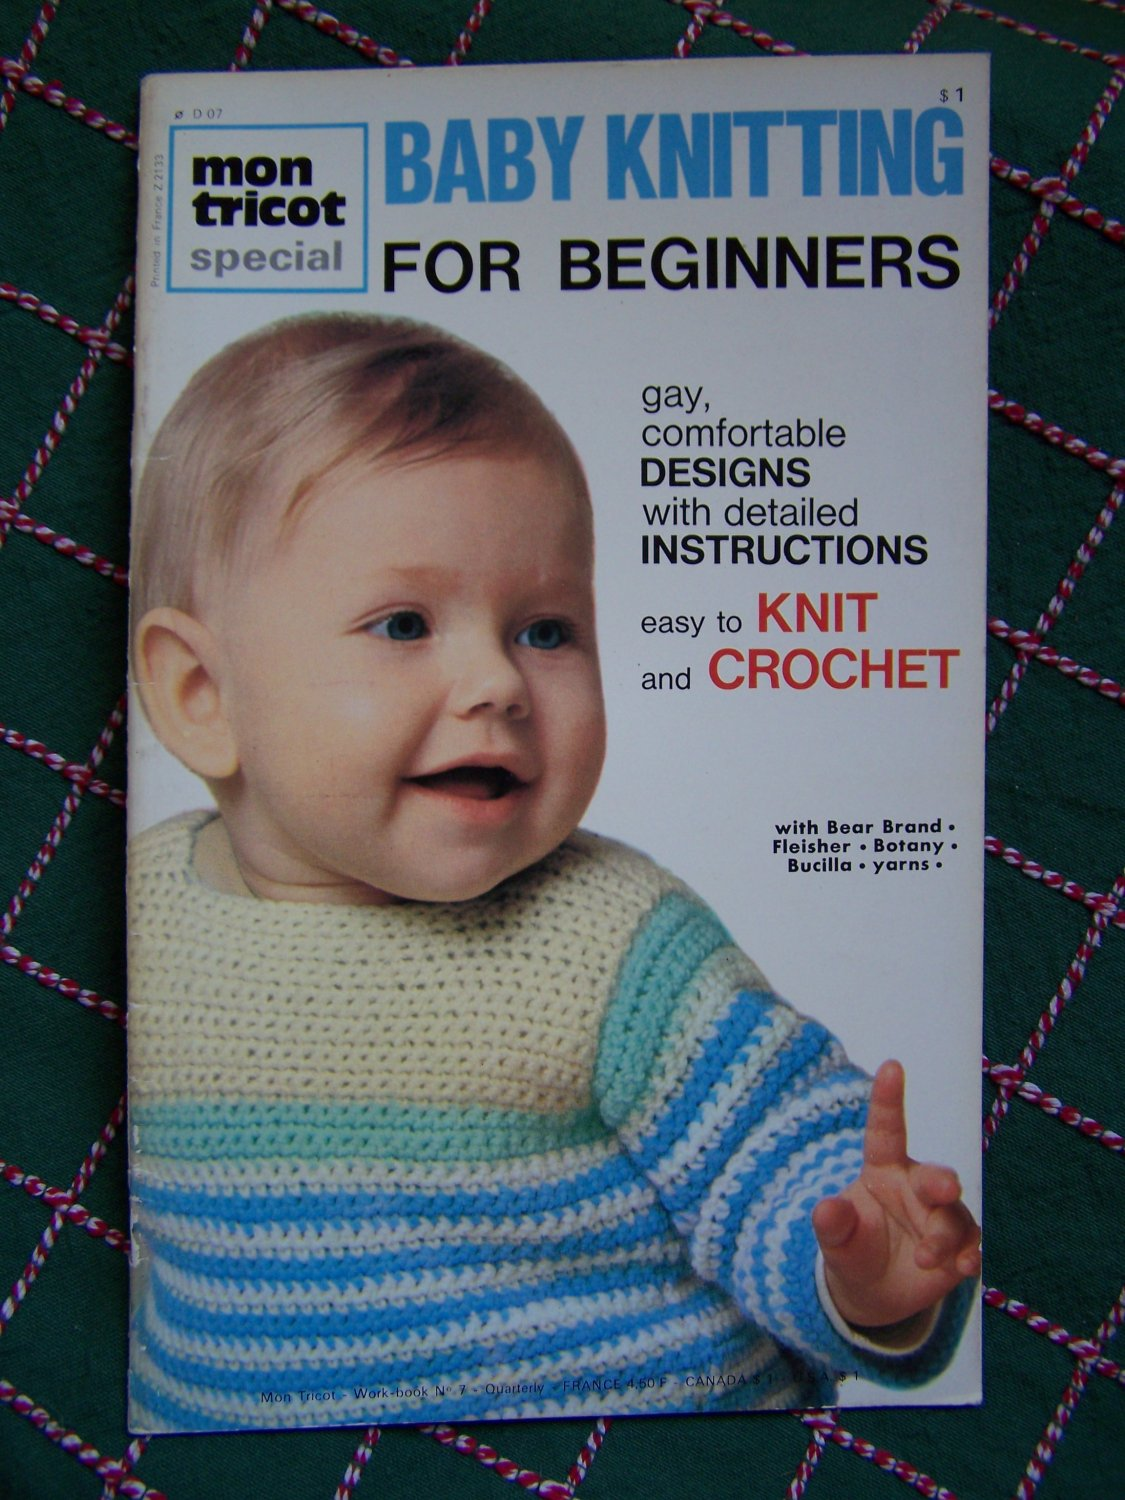 Knitting Book For Beginners : Vintage mon tricot baby knitting patterns for beginners